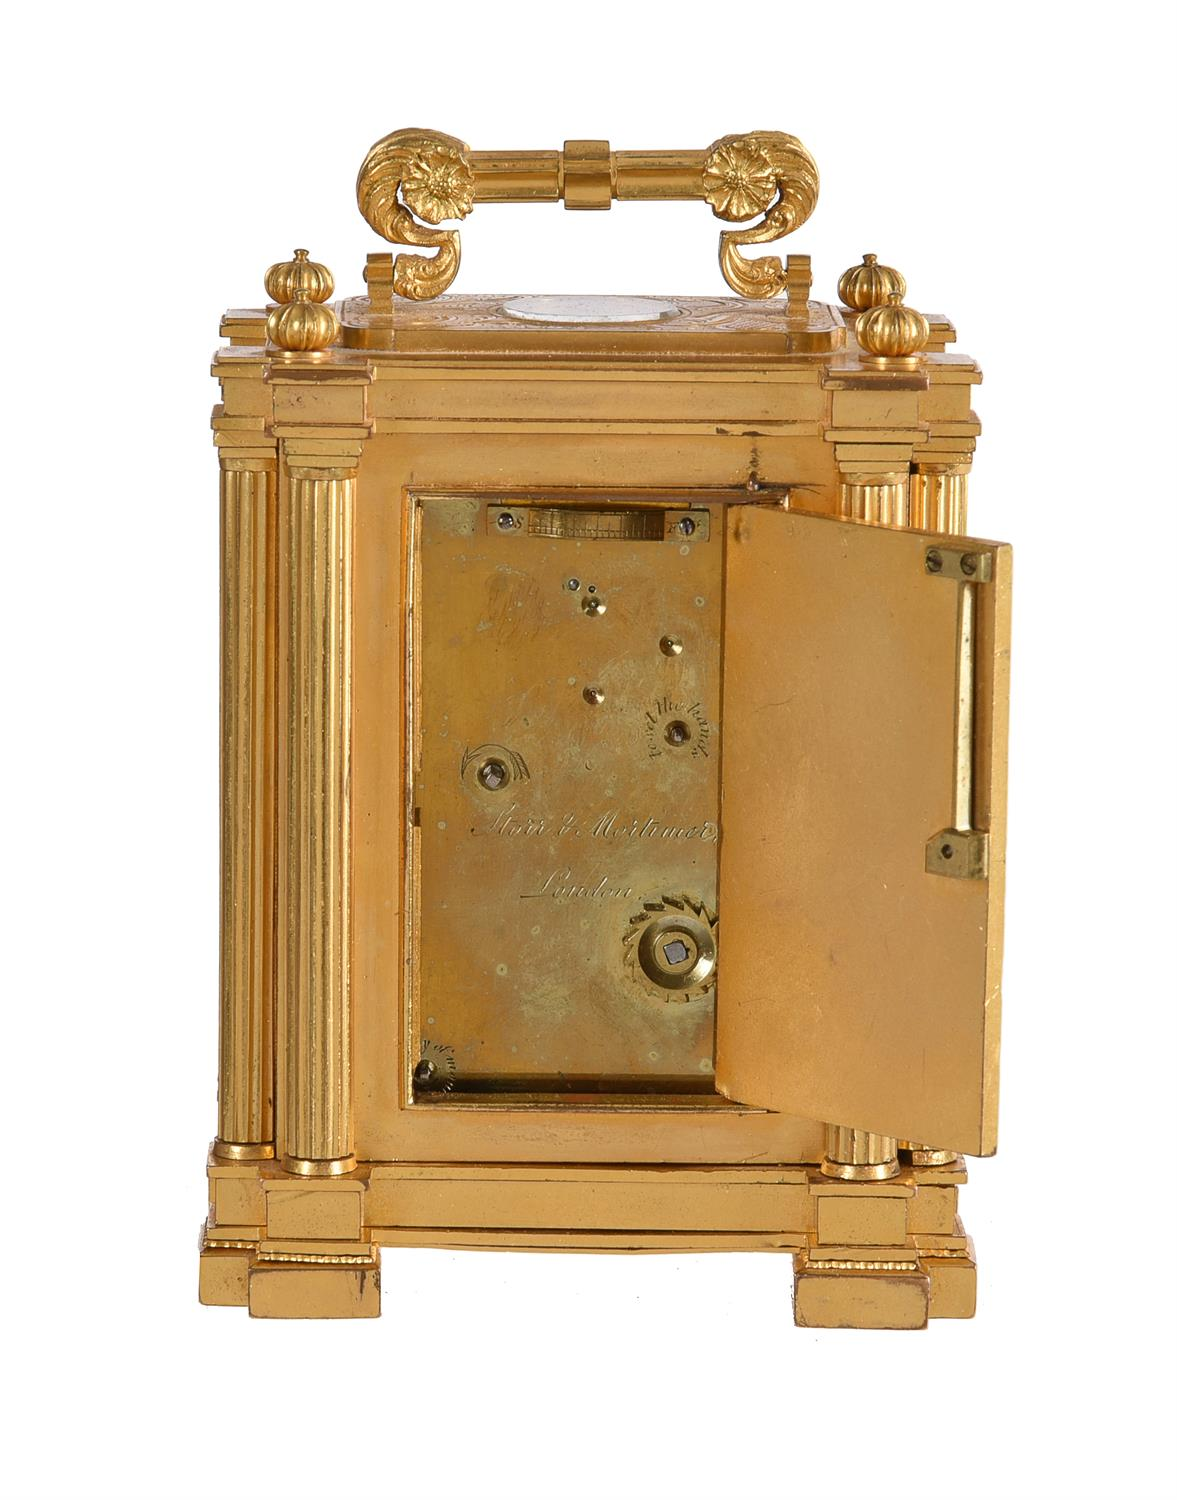 A fine small early Victorian engraved gilt brass small calendar carriage timepiece with twin thermom - Image 7 of 14